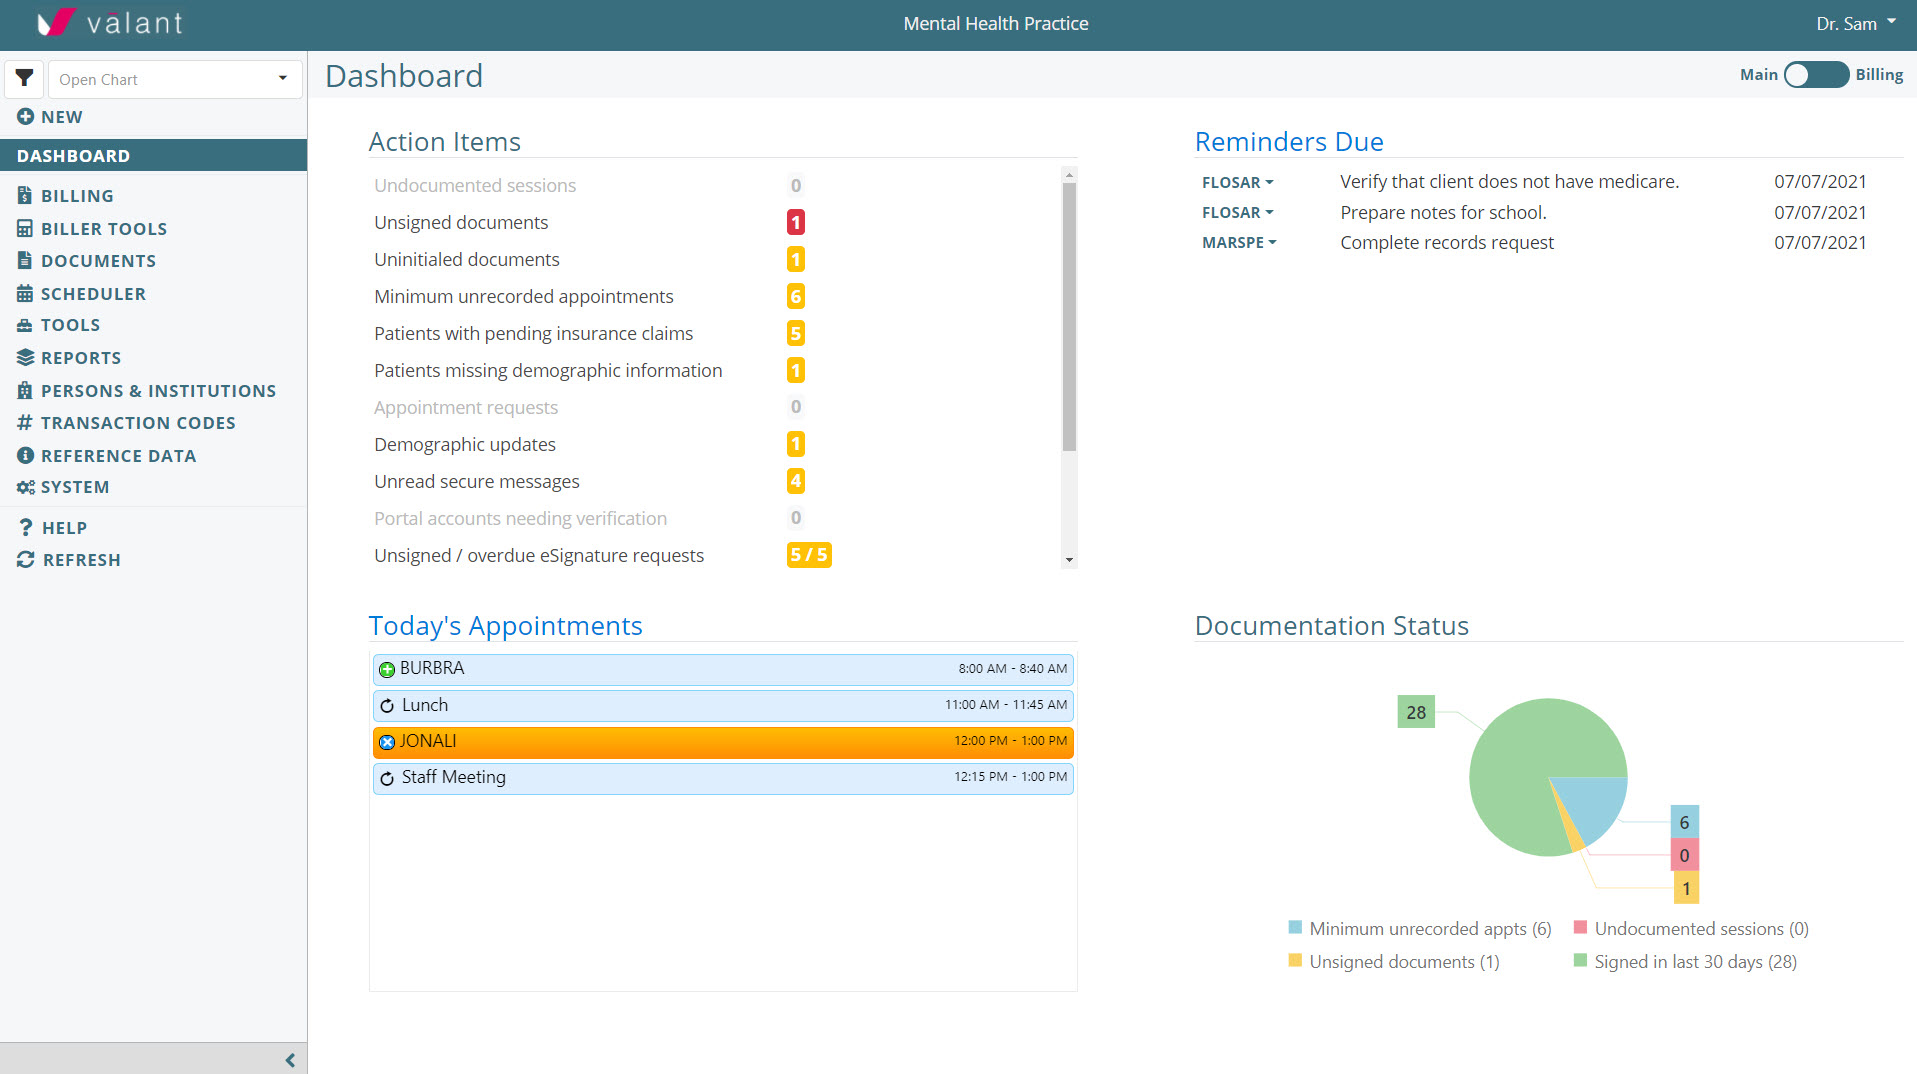 Valant's customizable dashboard keeps you organized and on task. See upcoming appointments, to-do lists, and documentation status in a quick-view format.